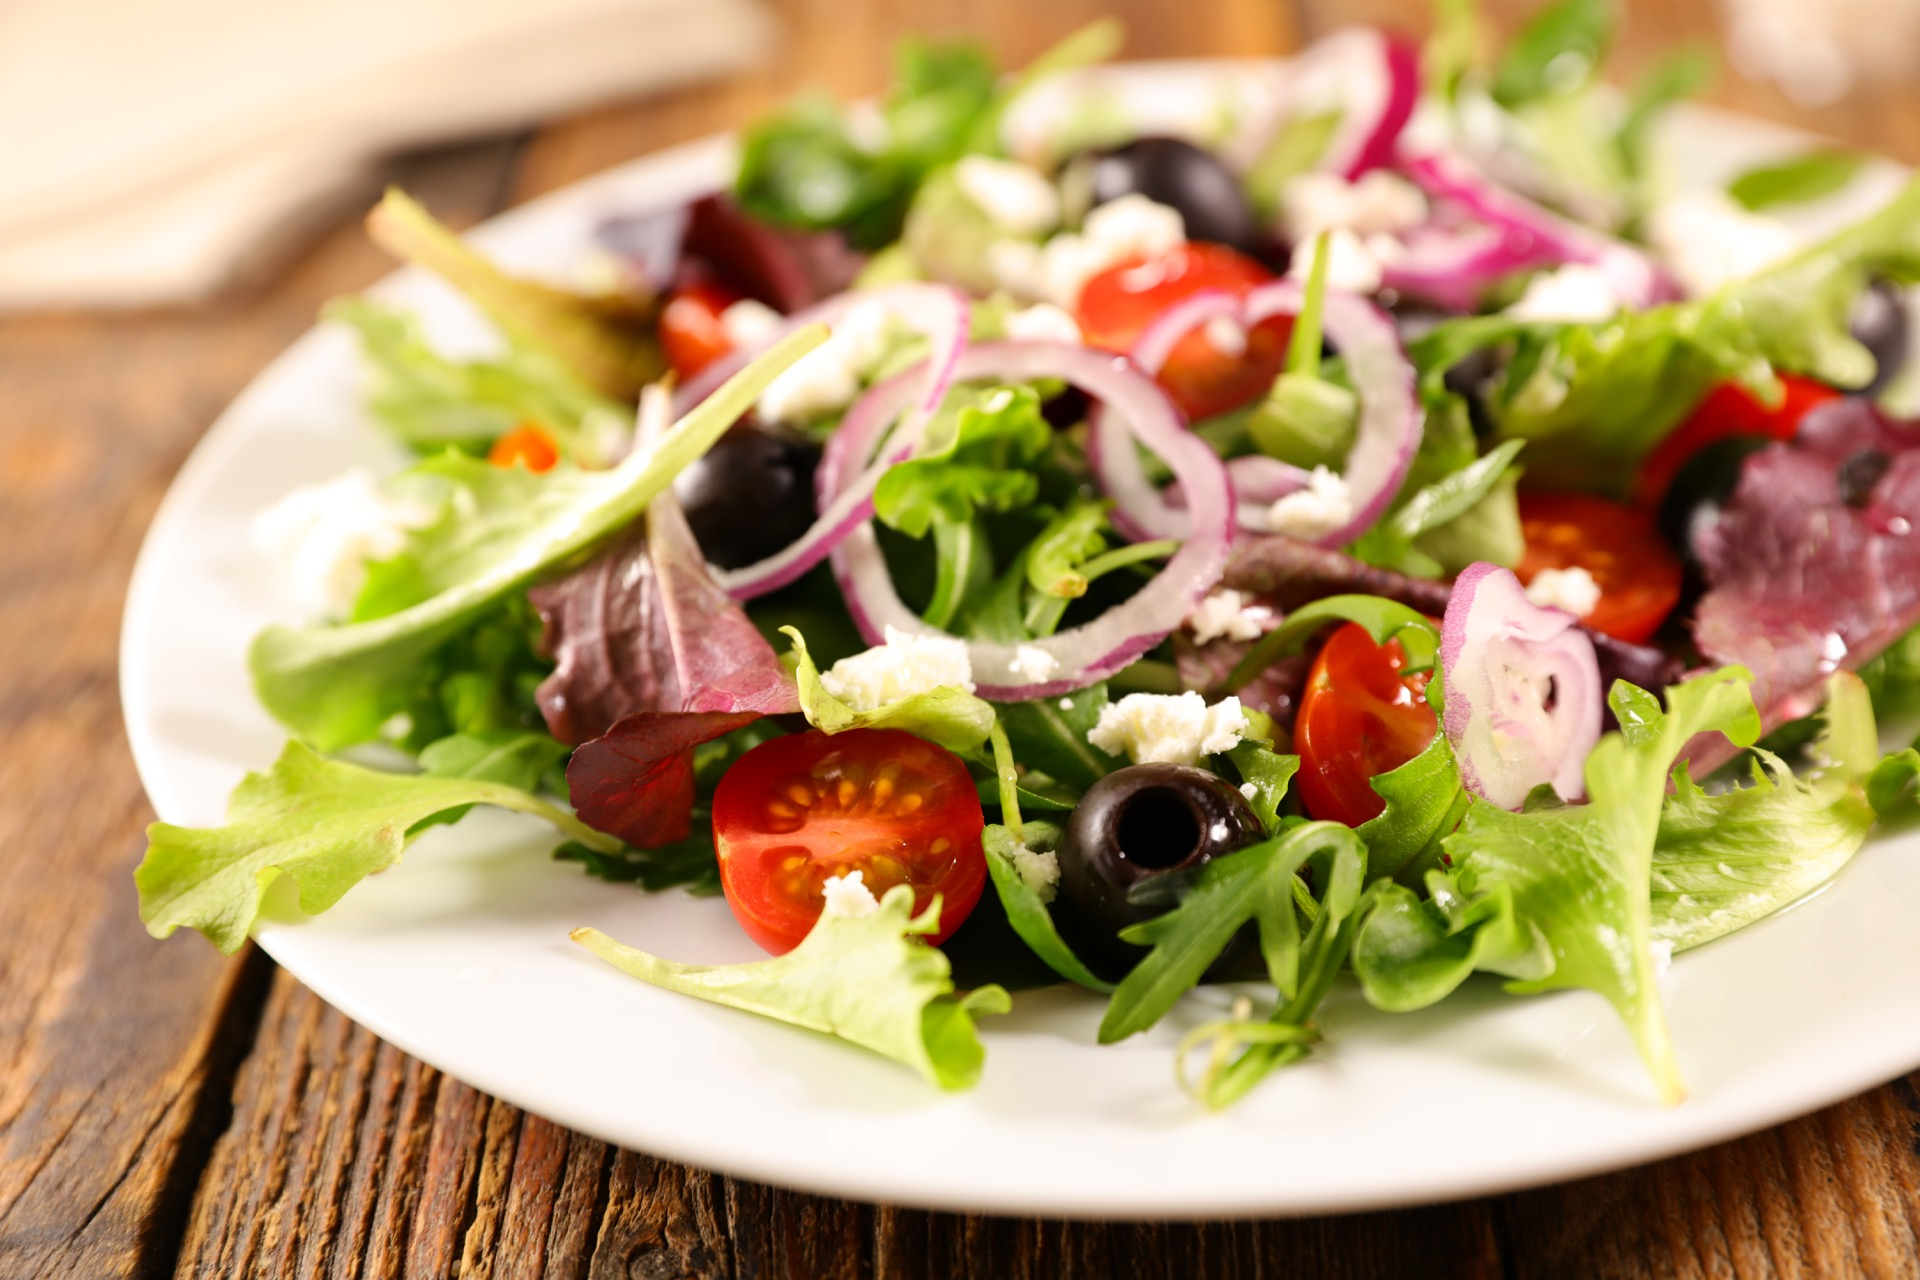 Healthy soft salad with many vegetables